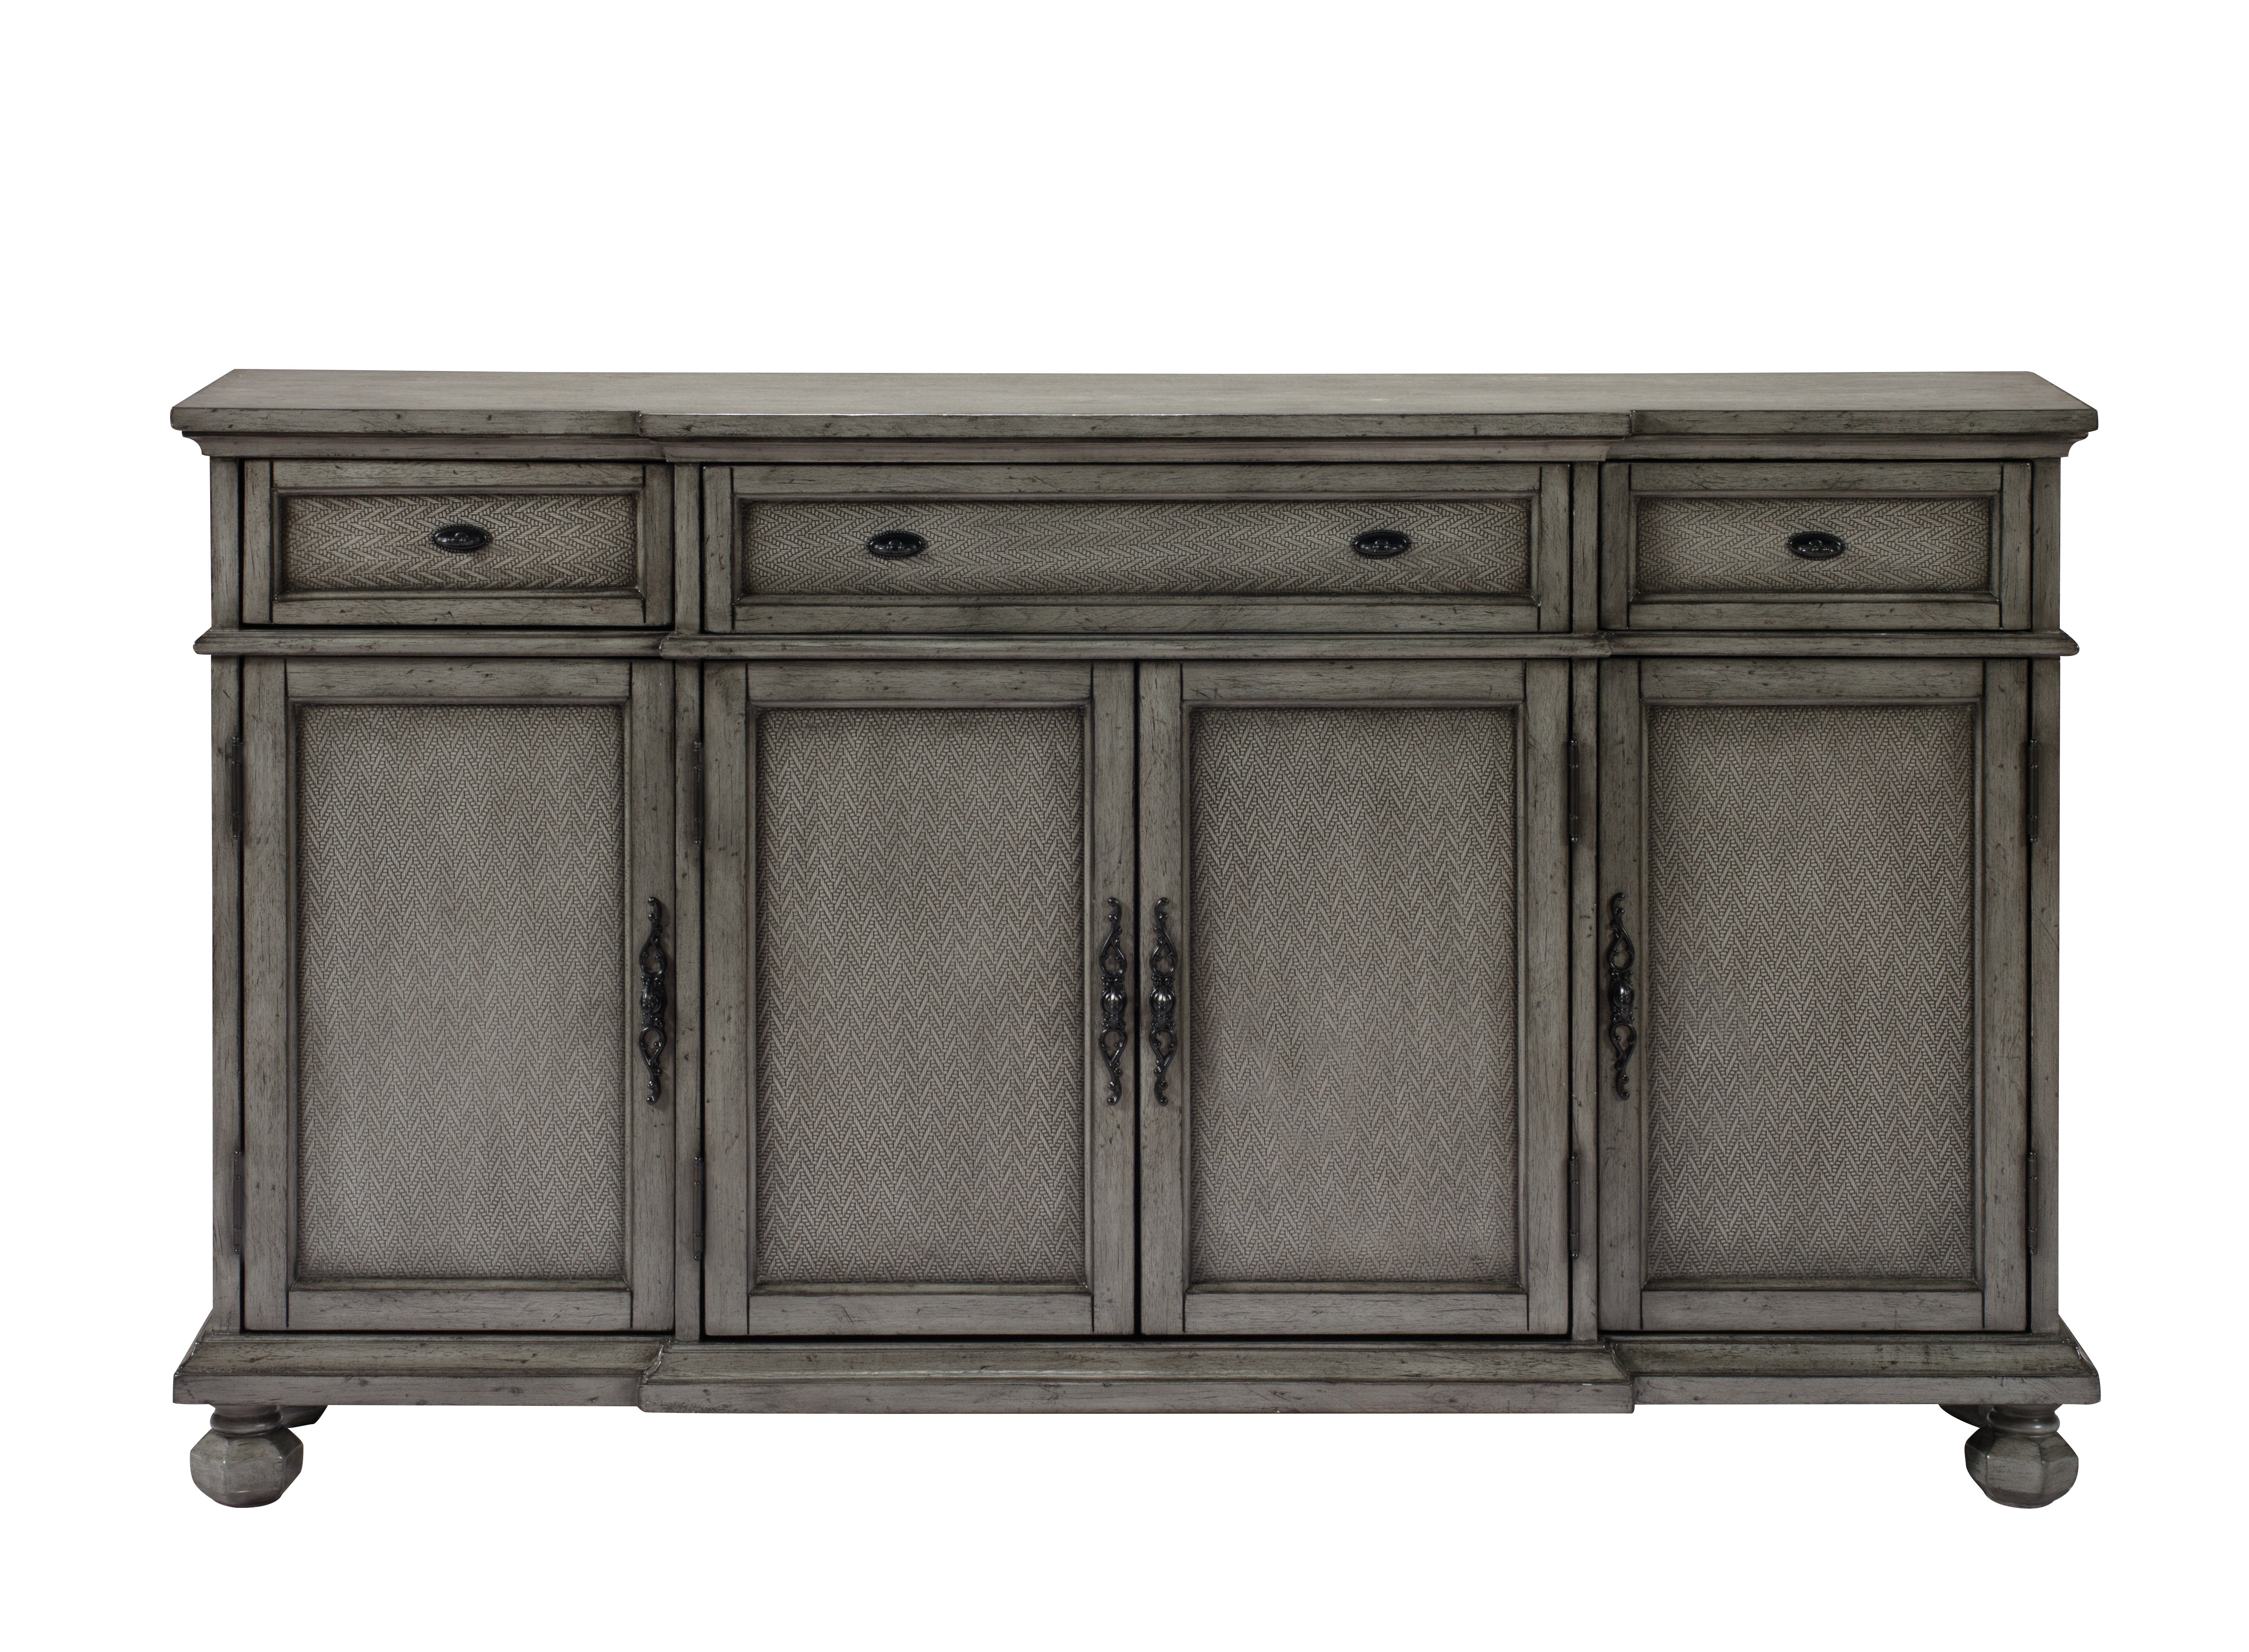 Giulia 3 Drawer Credenza & Reviews | Joss & Main Intended For Adelbert Credenzas (Gallery 3 of 20)